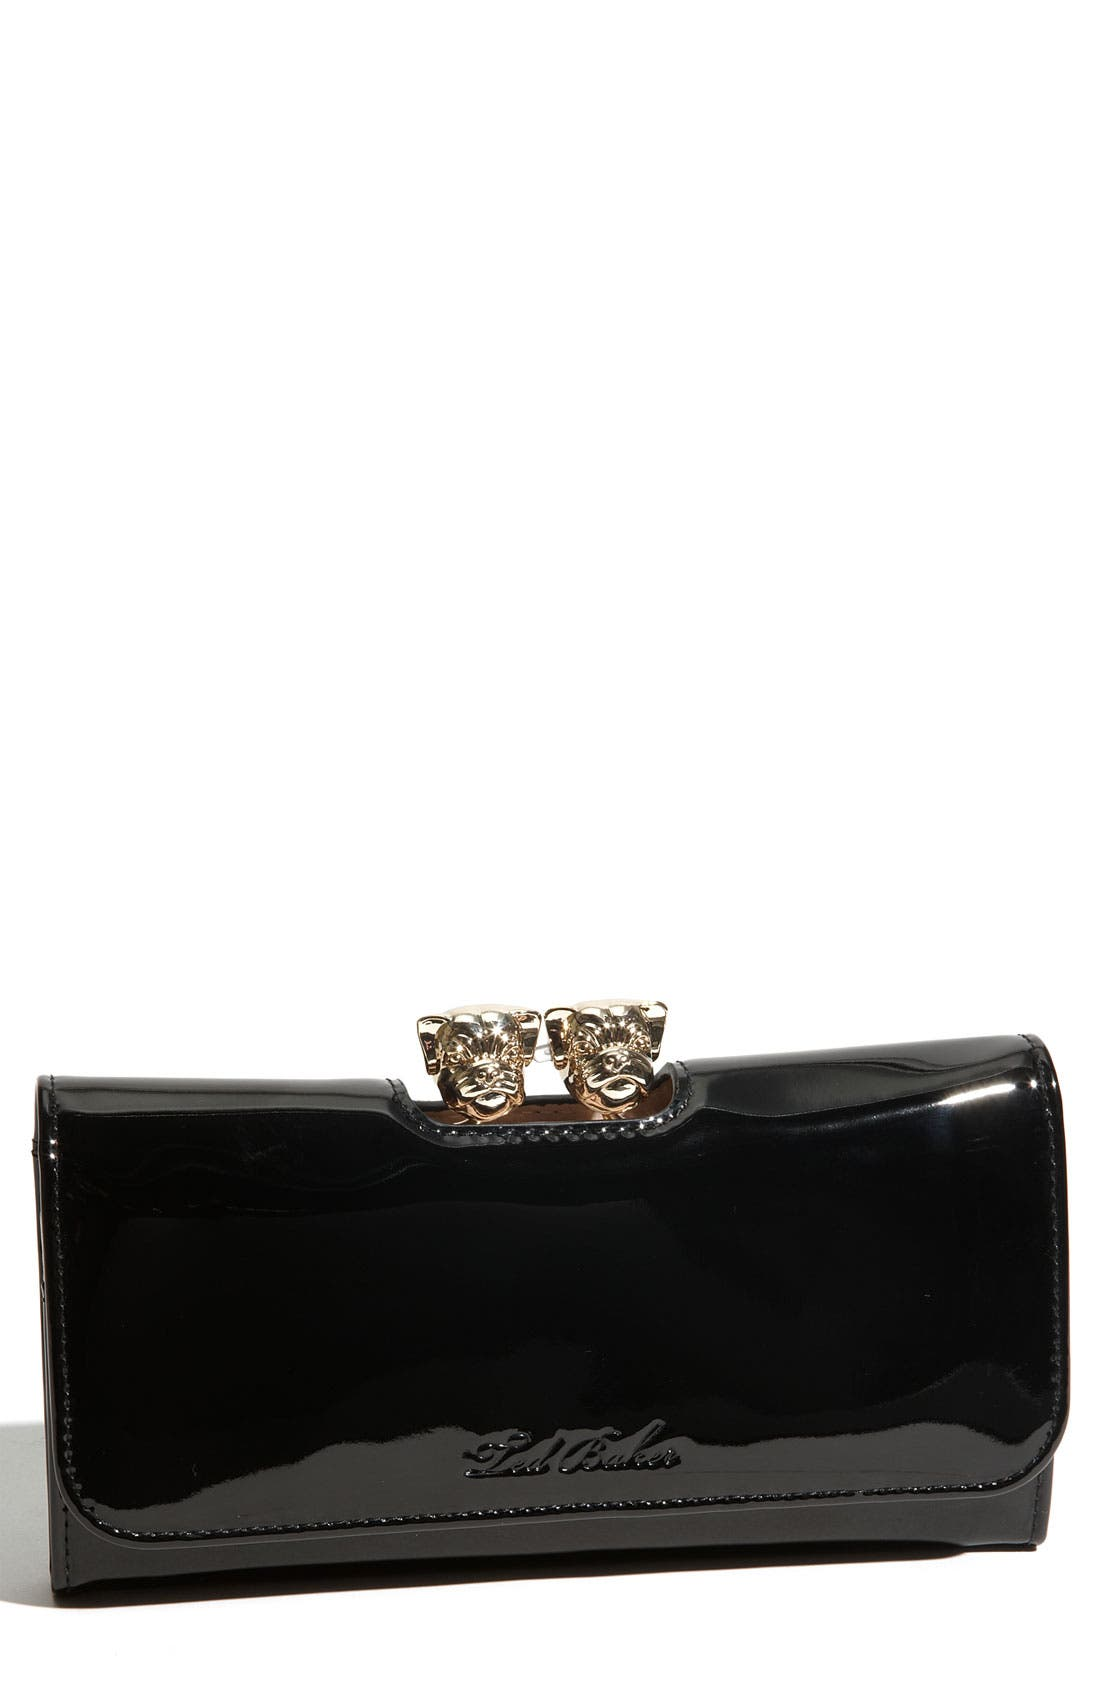 TED BAKER LONDON 'Roverz Bobble' Matinee Wallet, Main, color, 001